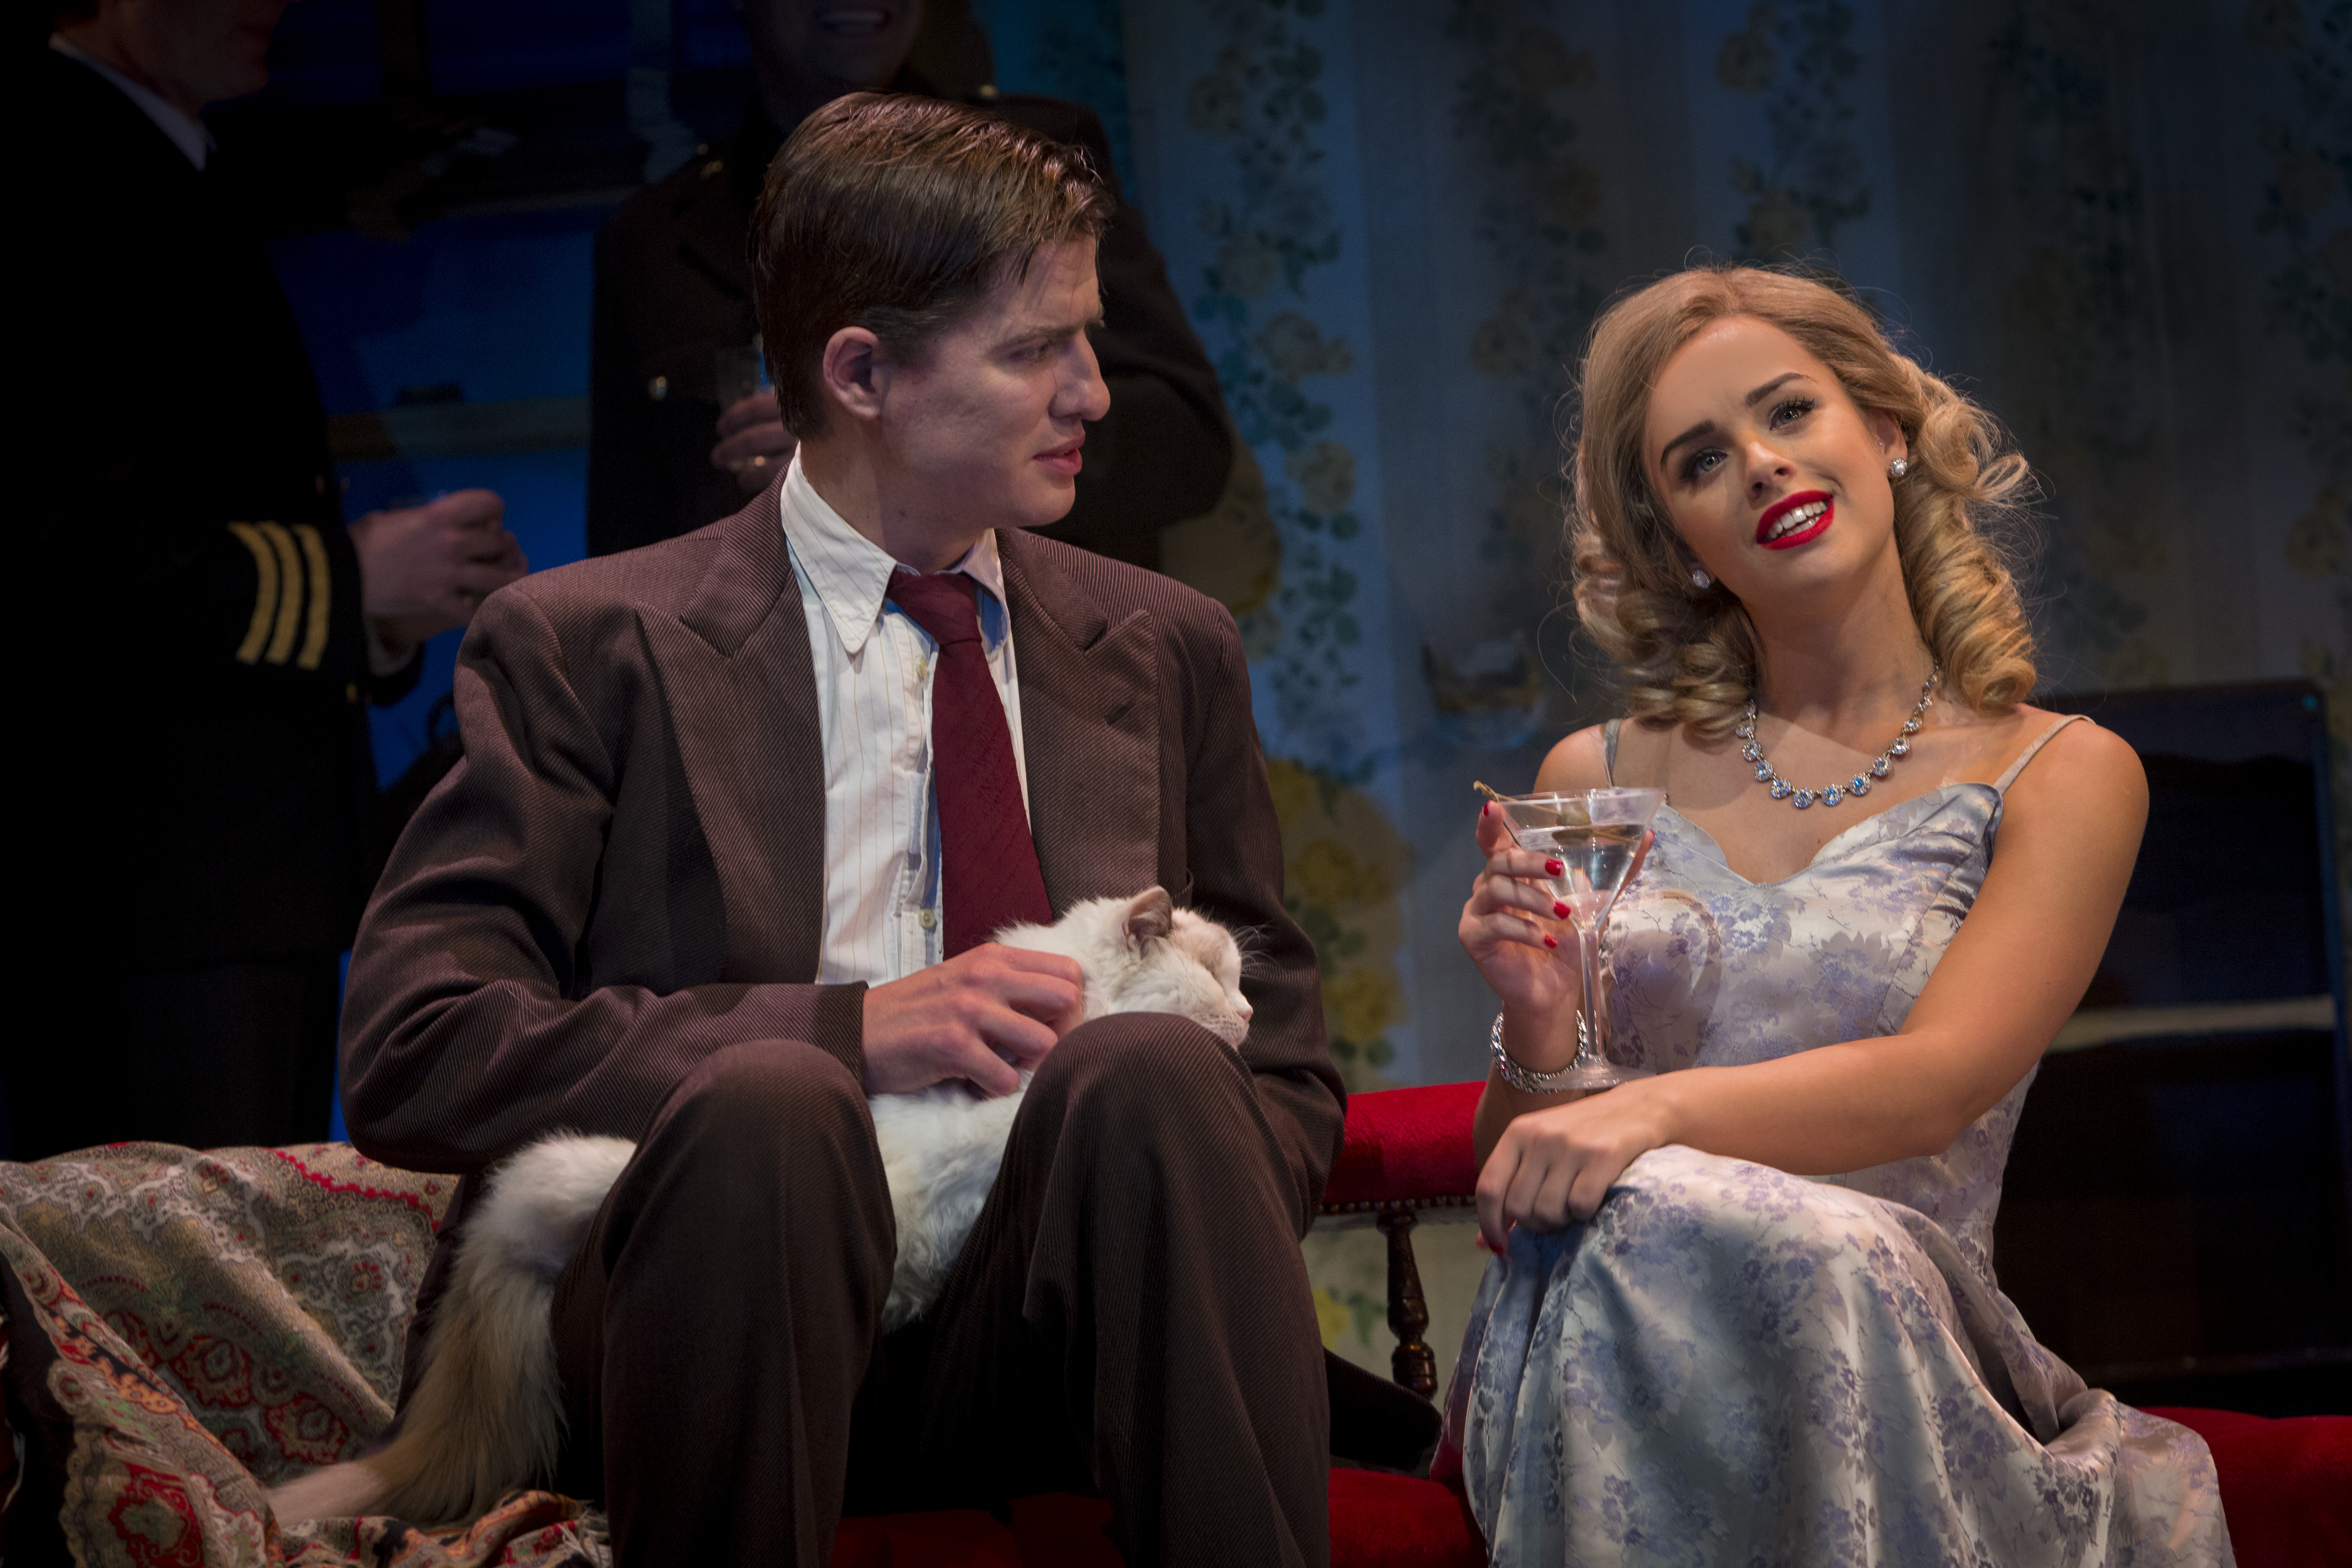 Breakfast at Tiffany's. Matt Barber as Fred and Georgia May Foote as Holly Golightly in Breakfast at Tiffany's. (Photo by Sean Ebsworth Barnes.